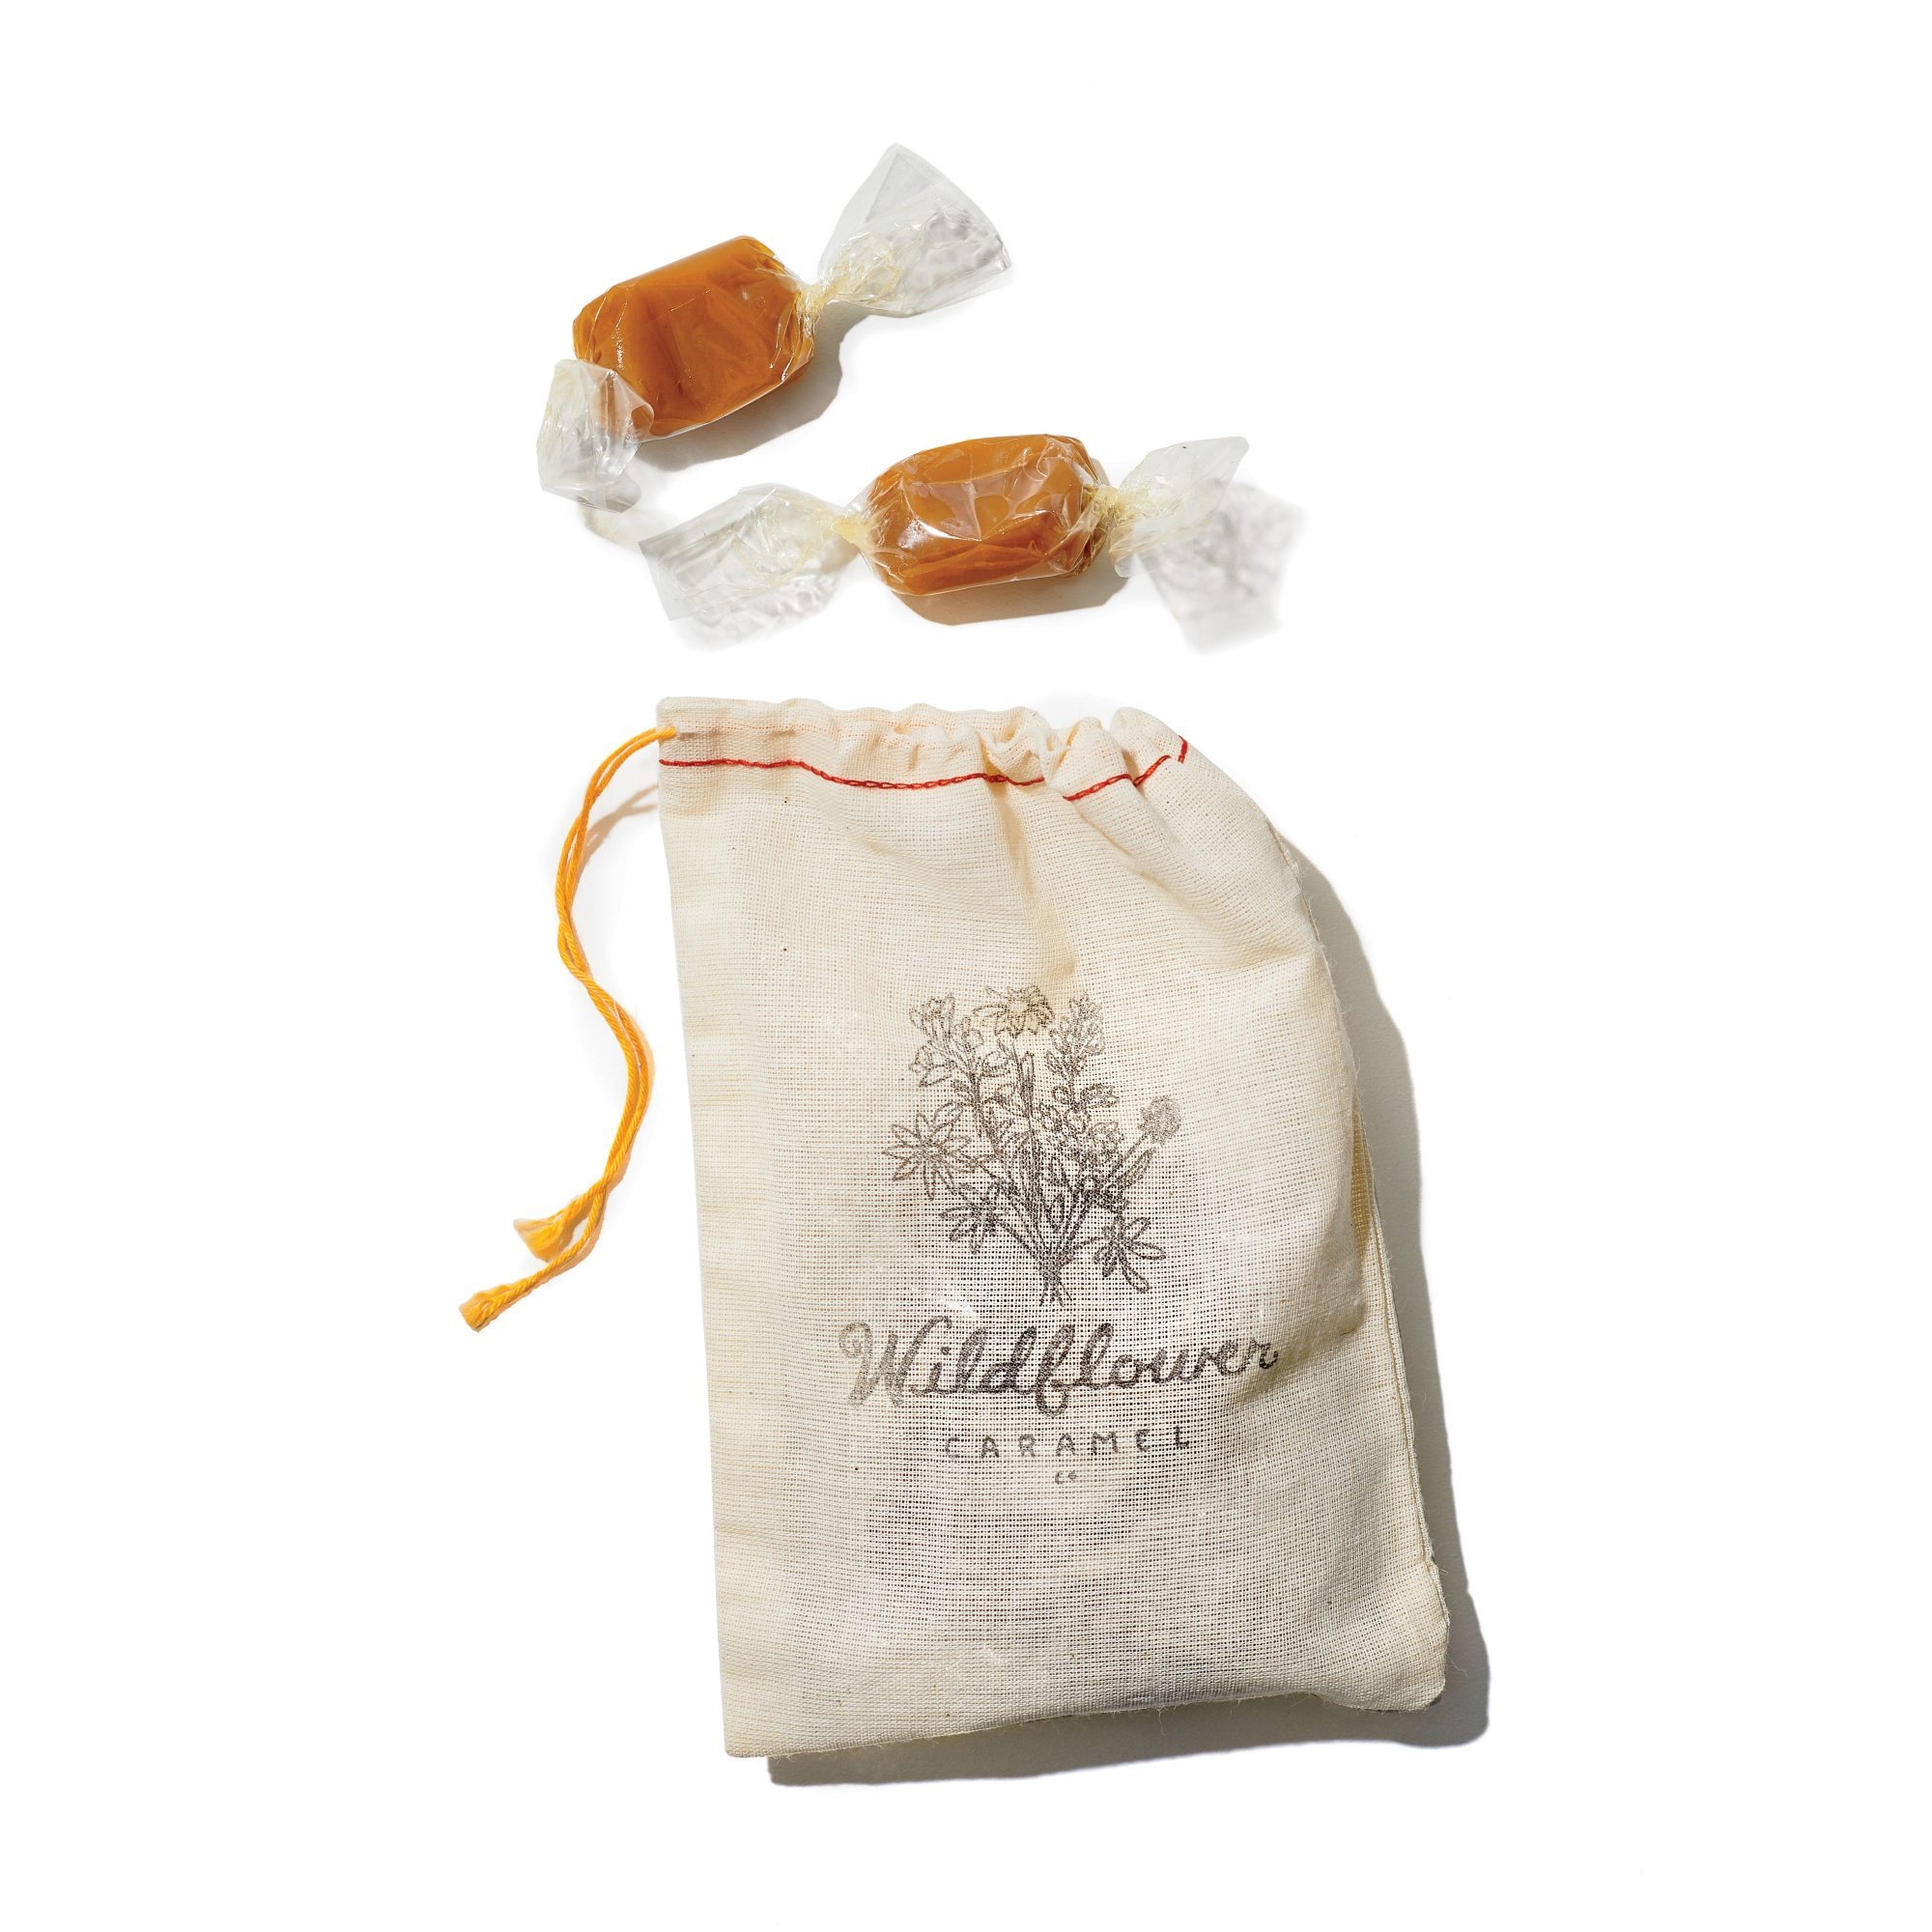 2018 Food Awards: Wildflower Caramel Co. Caramels